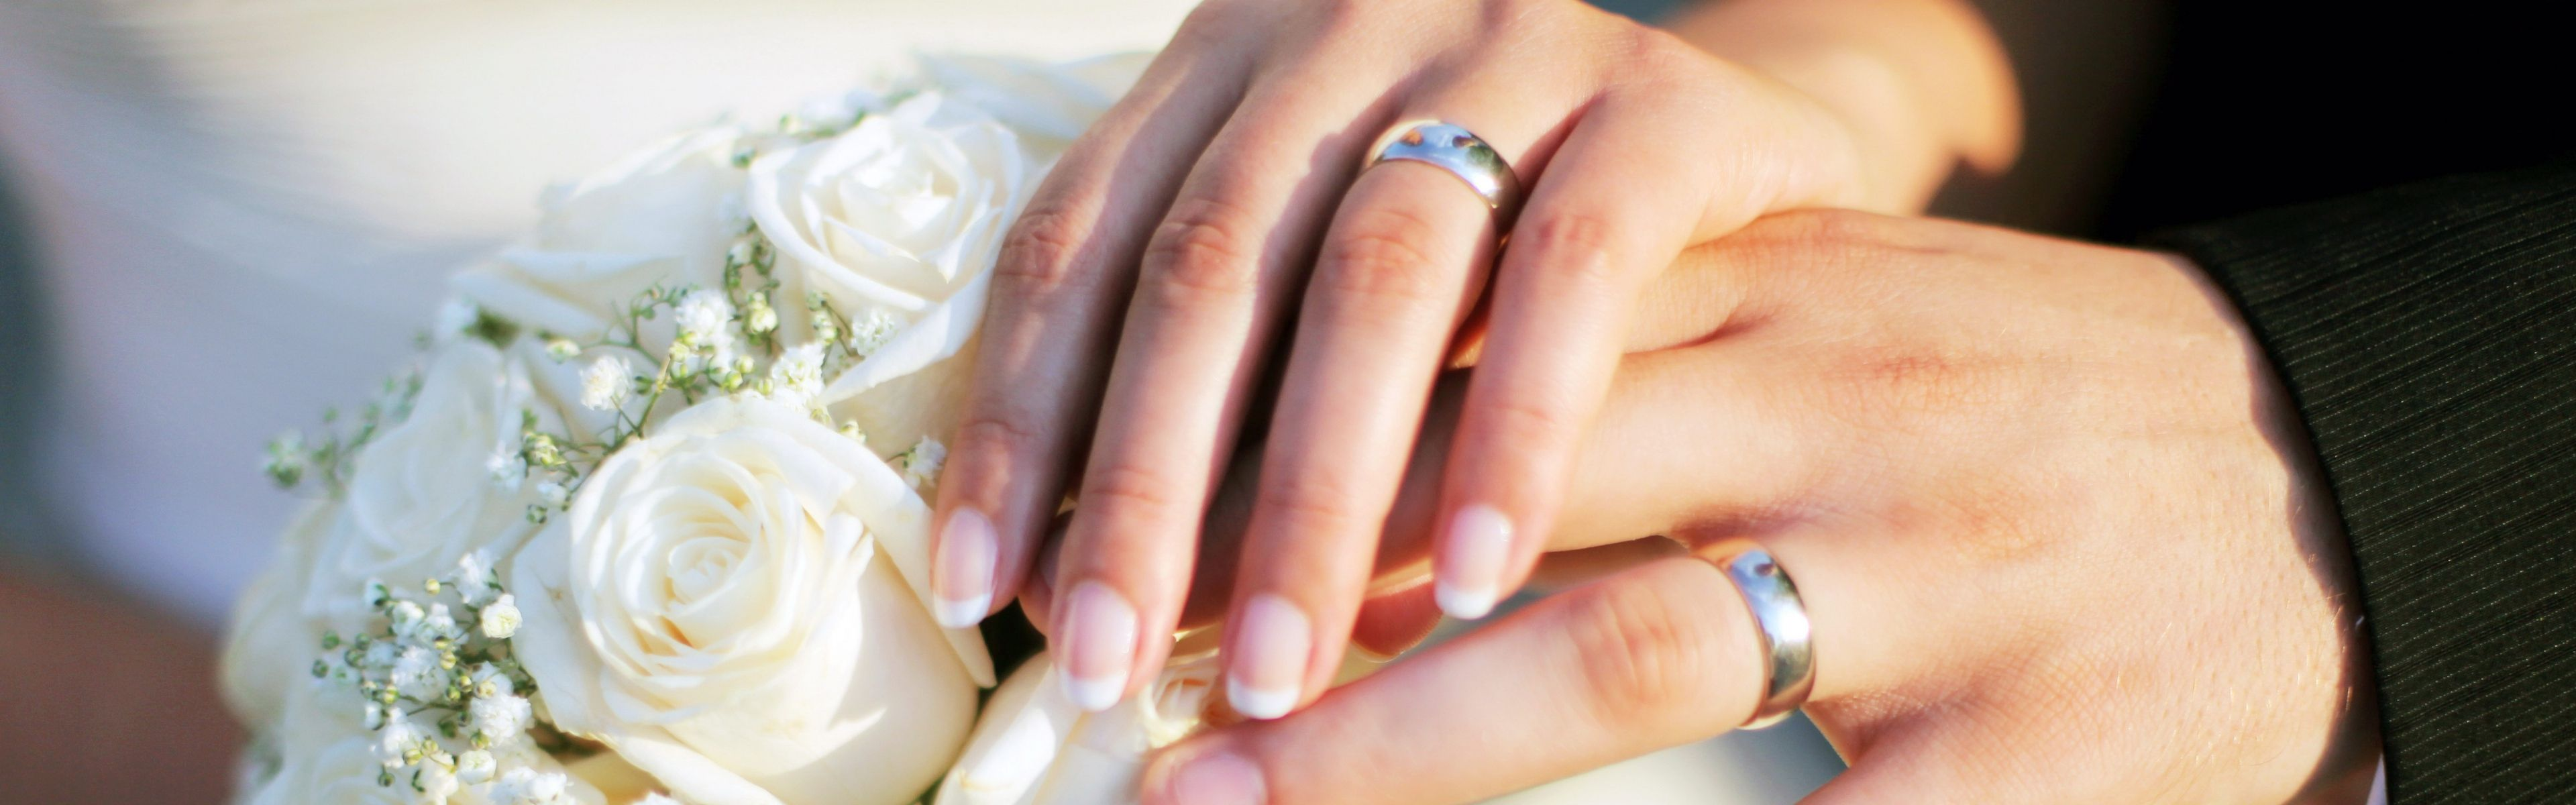 picture with couples hands with wedding rings on a bouquet download 3840x1200 hands wedding - Wedding Rings On Hands